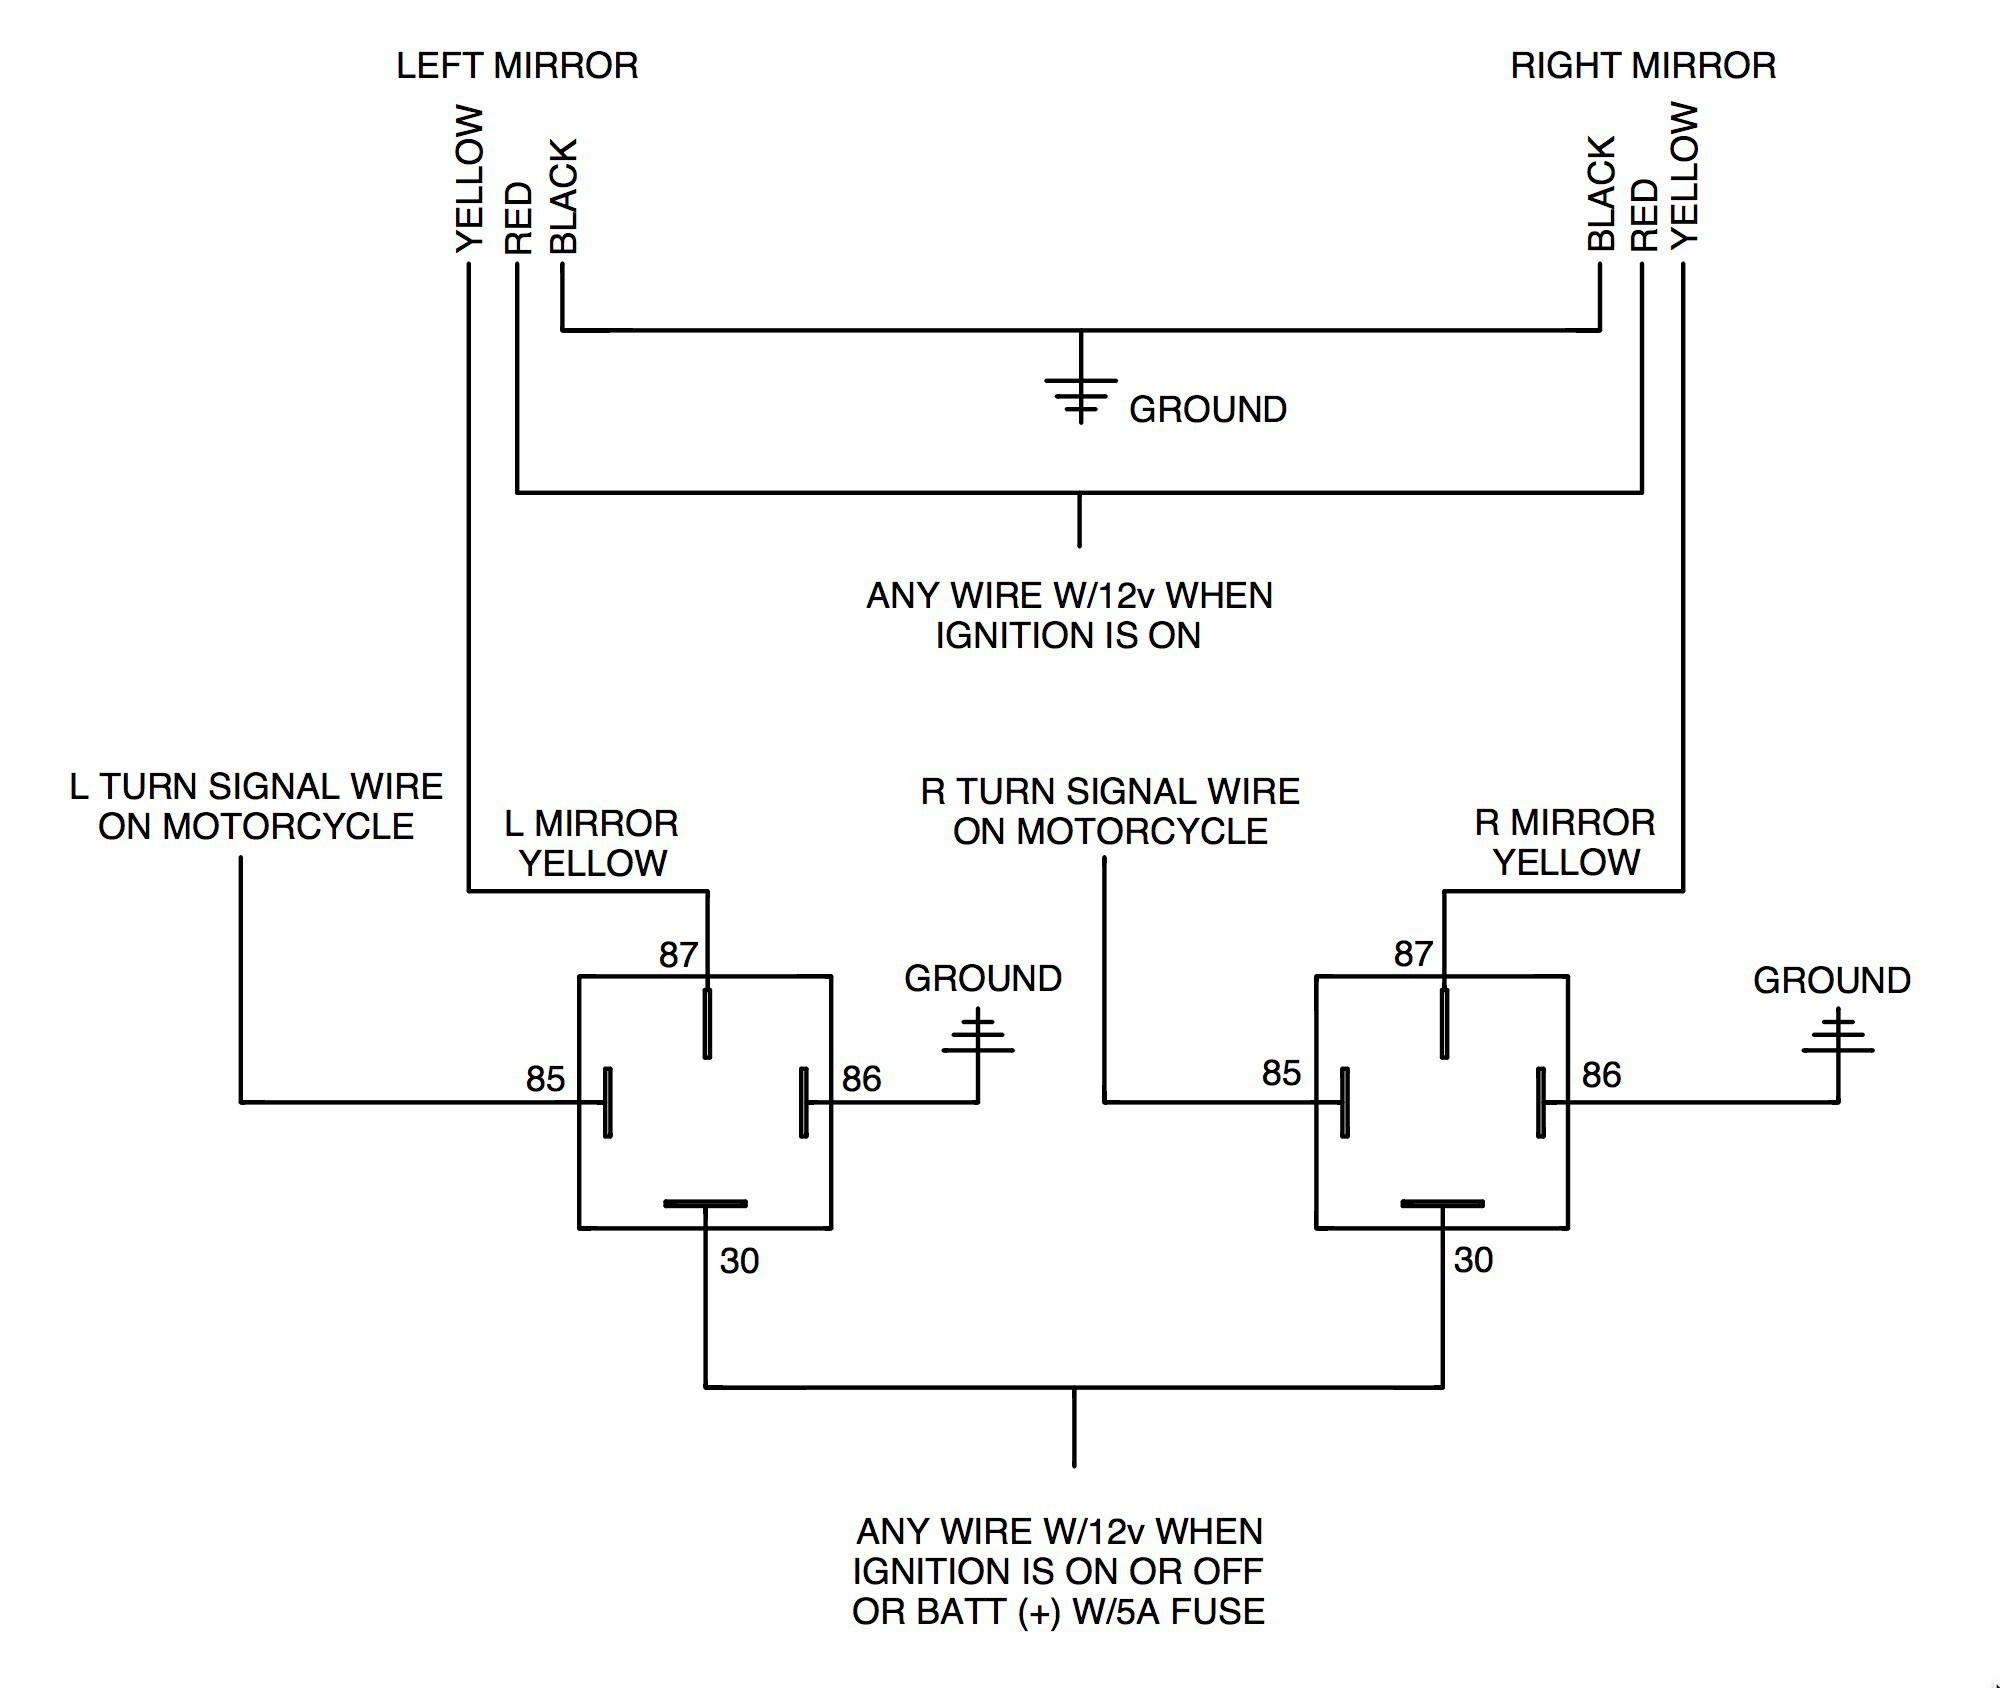 12v Led Stop Light Wiring Diagram Guide And Troubleshooting Of Switch Library Rh 42 Skriptoase De Dual Wires Toggle